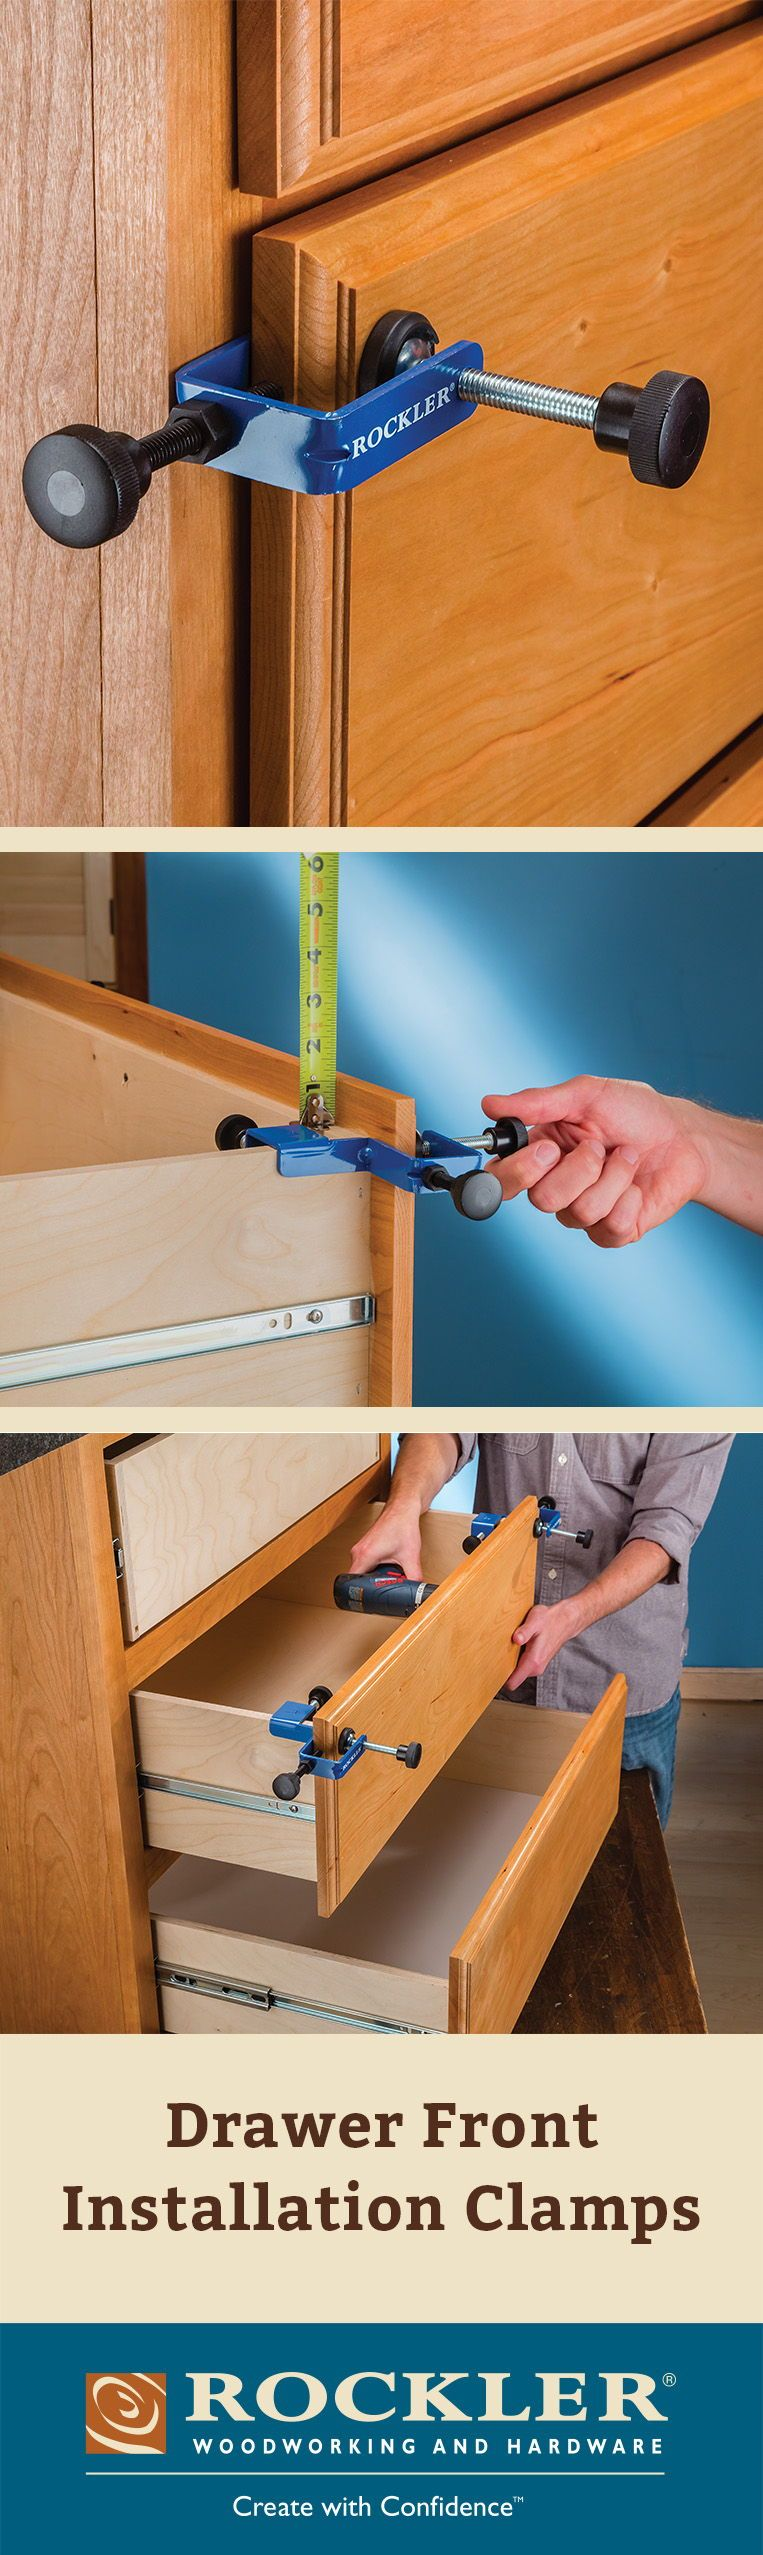 Drawer Front Installation Clamps Diy Wood Box Woodworking Drawer Fronts